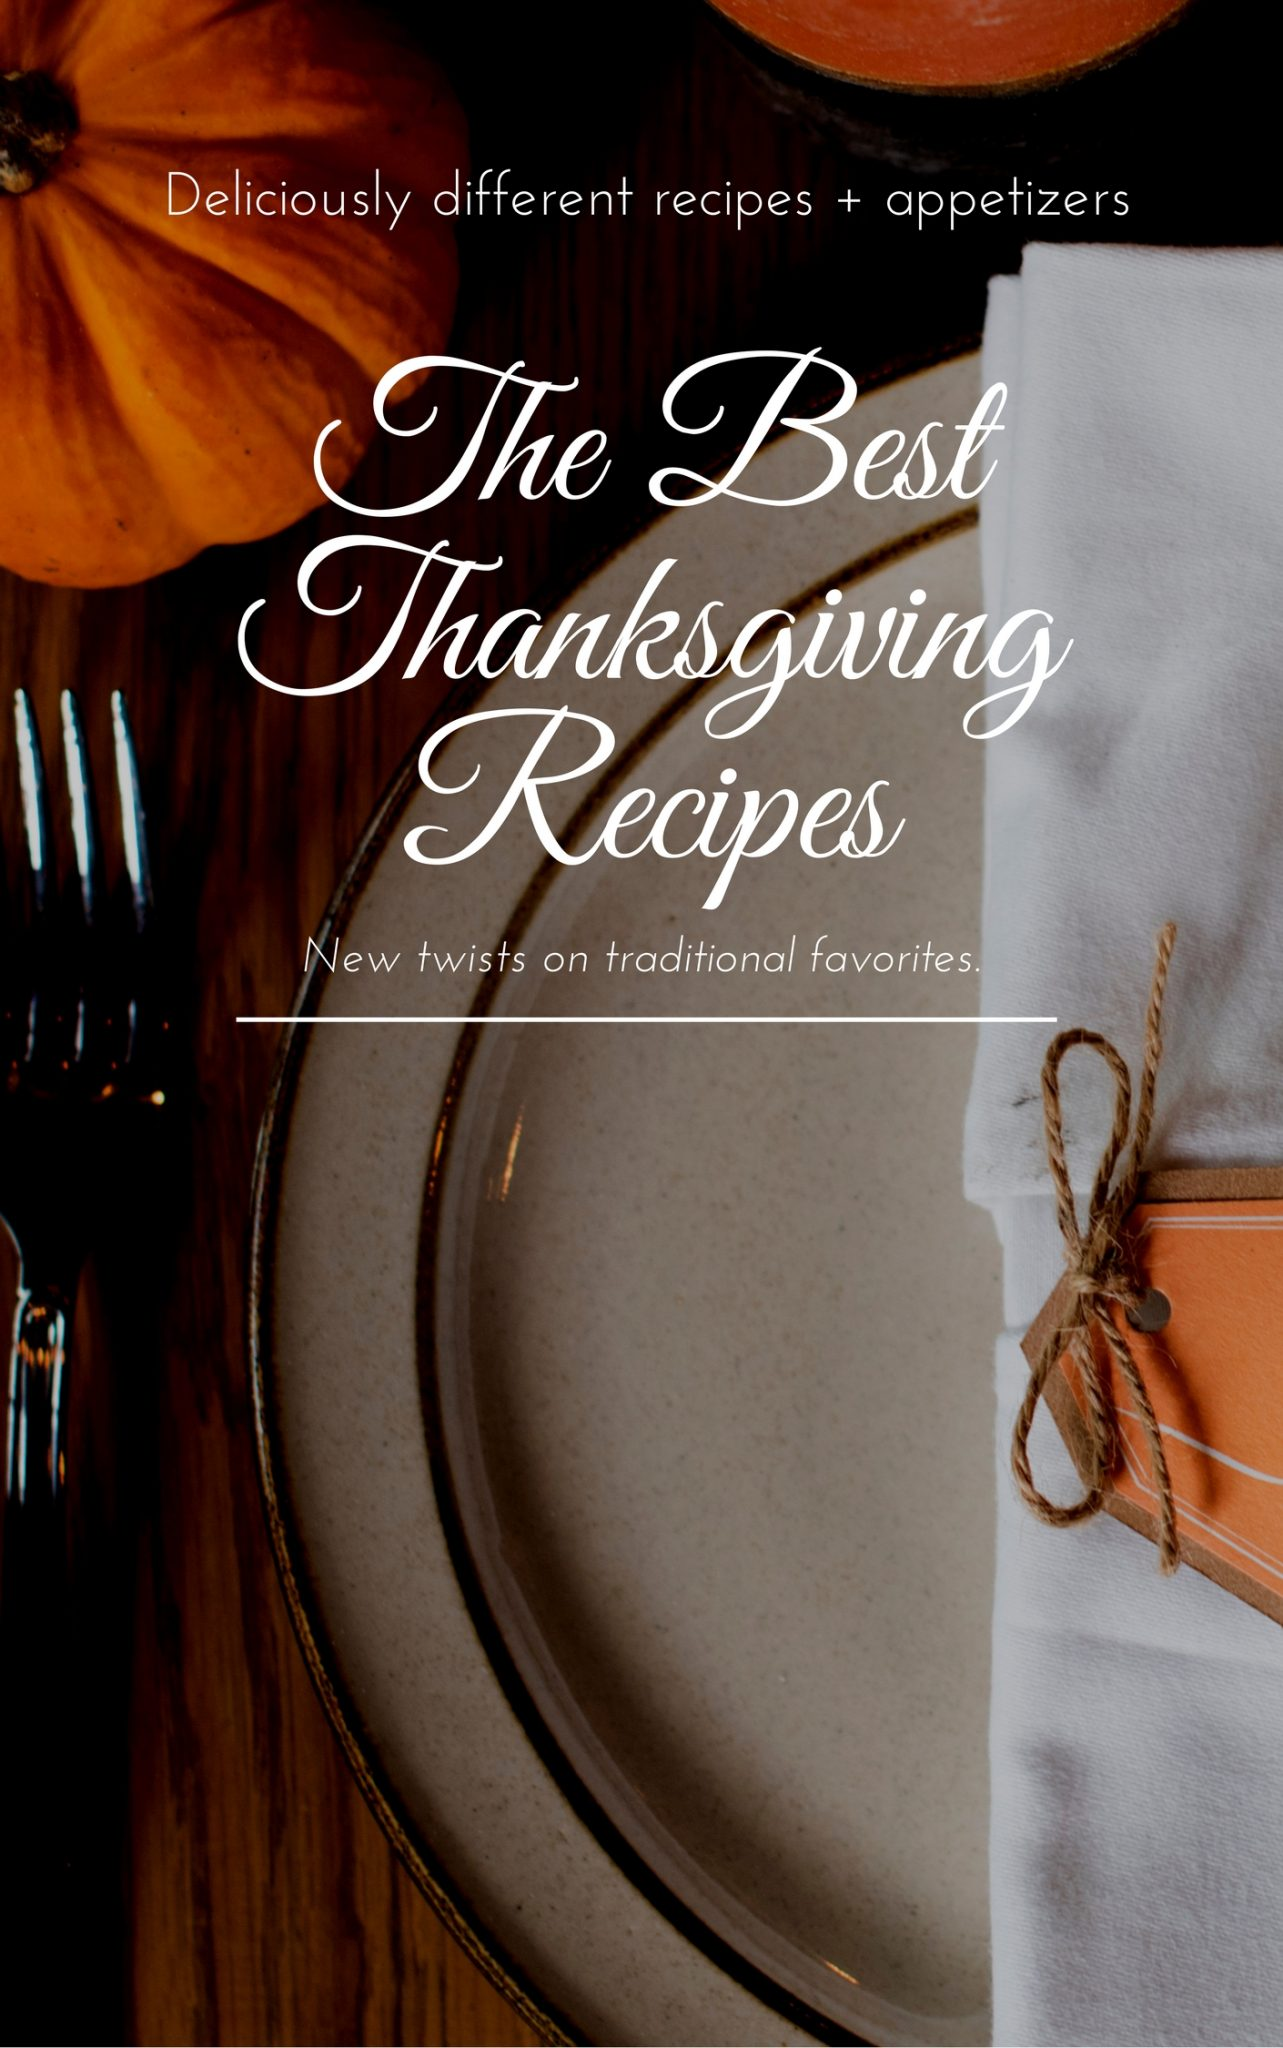 Sharing some of our blog favorites: Our very best Thanksgiving recipes + Thanksgiving appetizers.